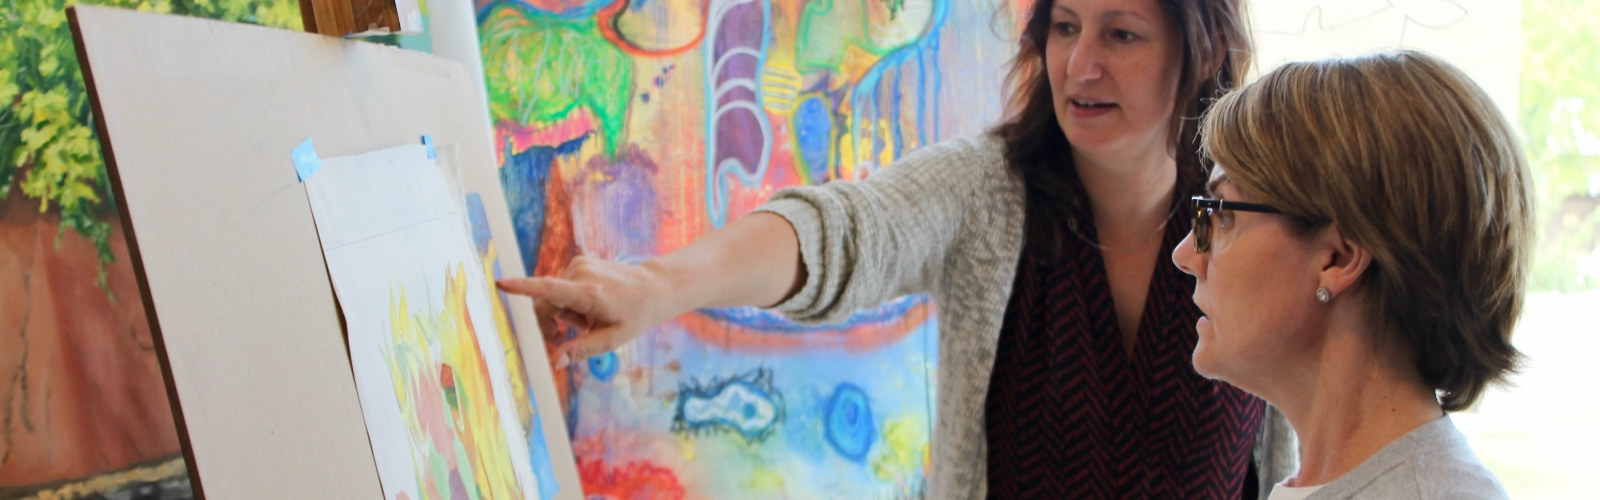 A New Direction in Art Education